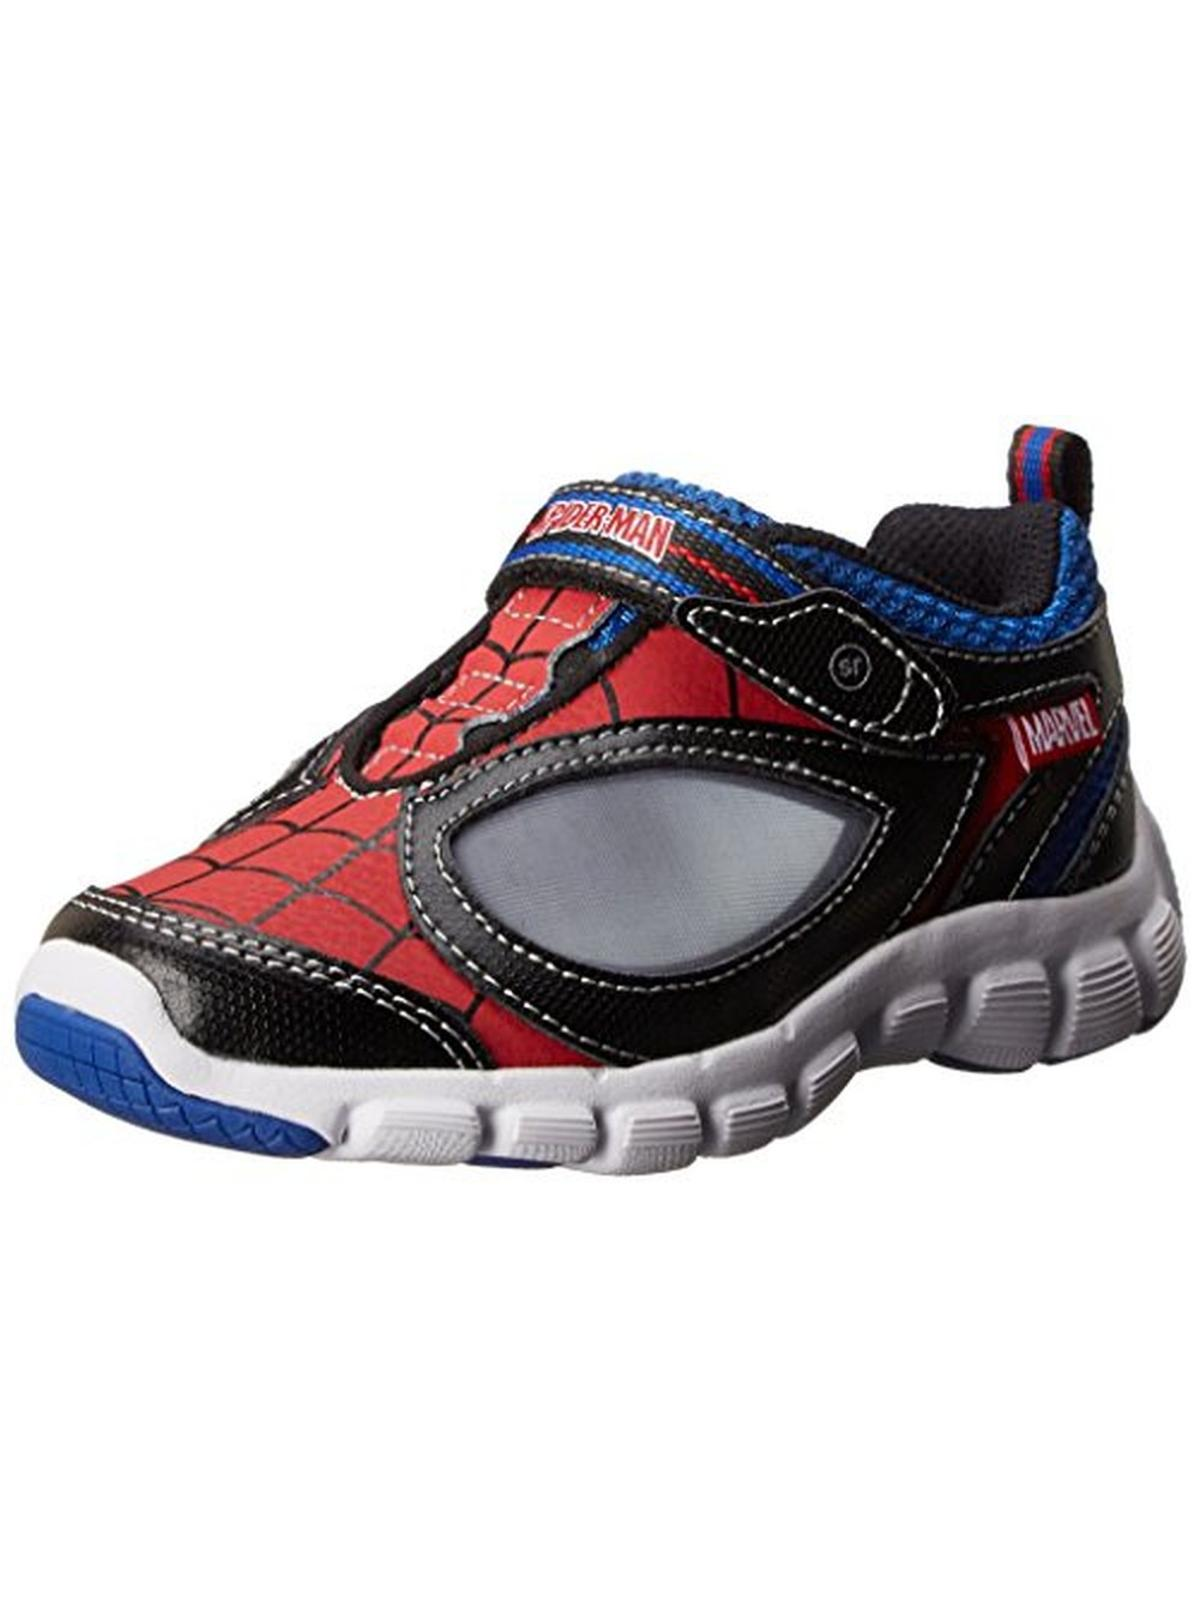 Stride Rite Boys Spidey Reflex Toddler Light-Up Athletic Shoes by Stride Rite